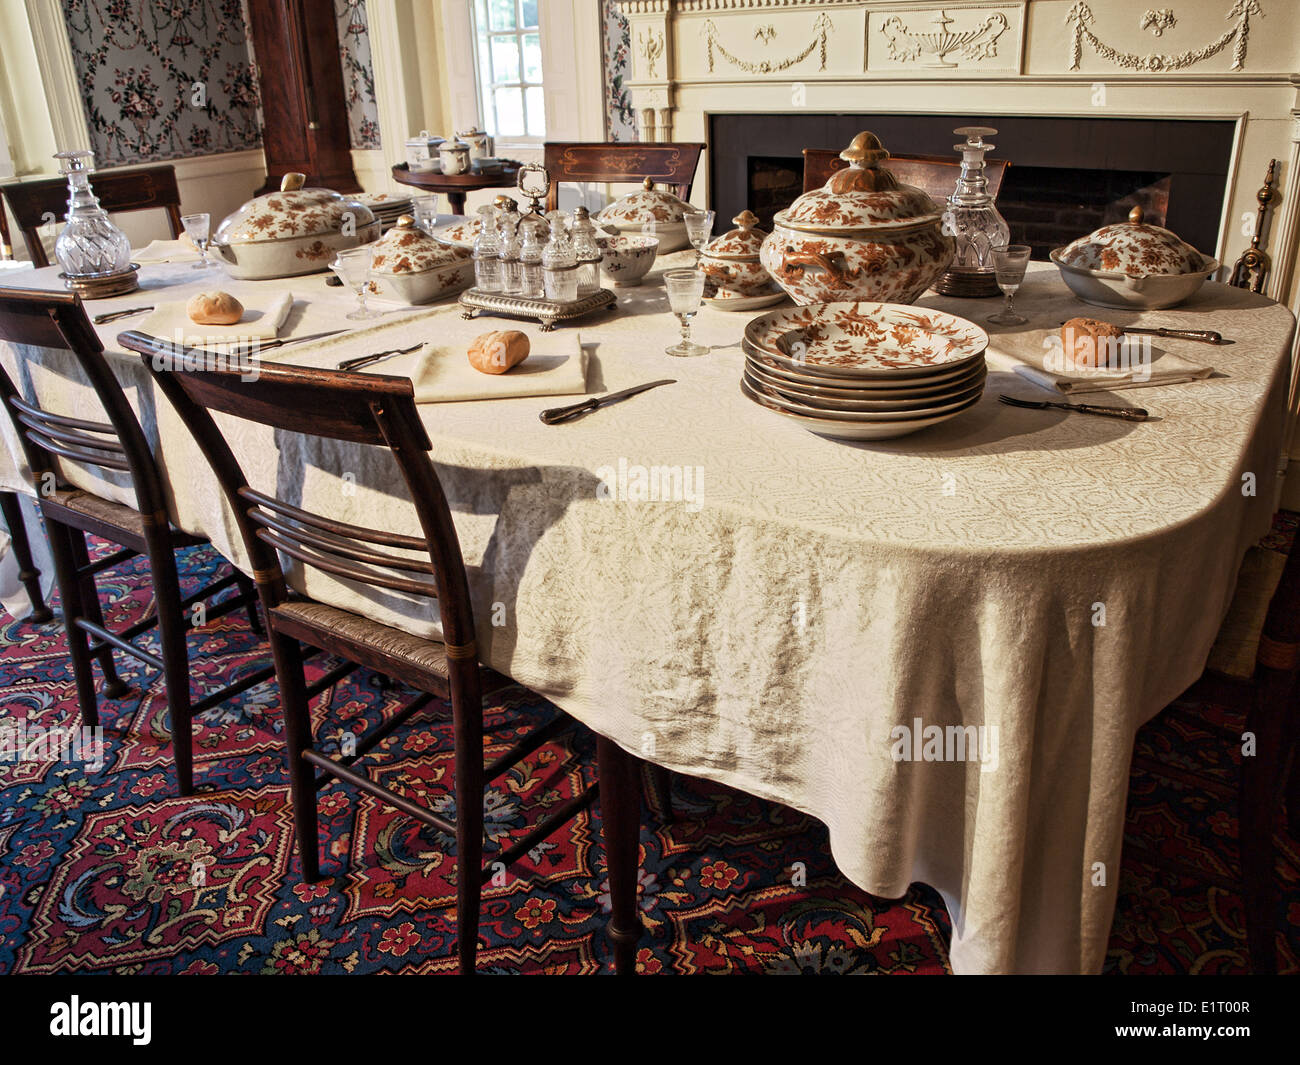 old fashioned dining room table Stock Photo